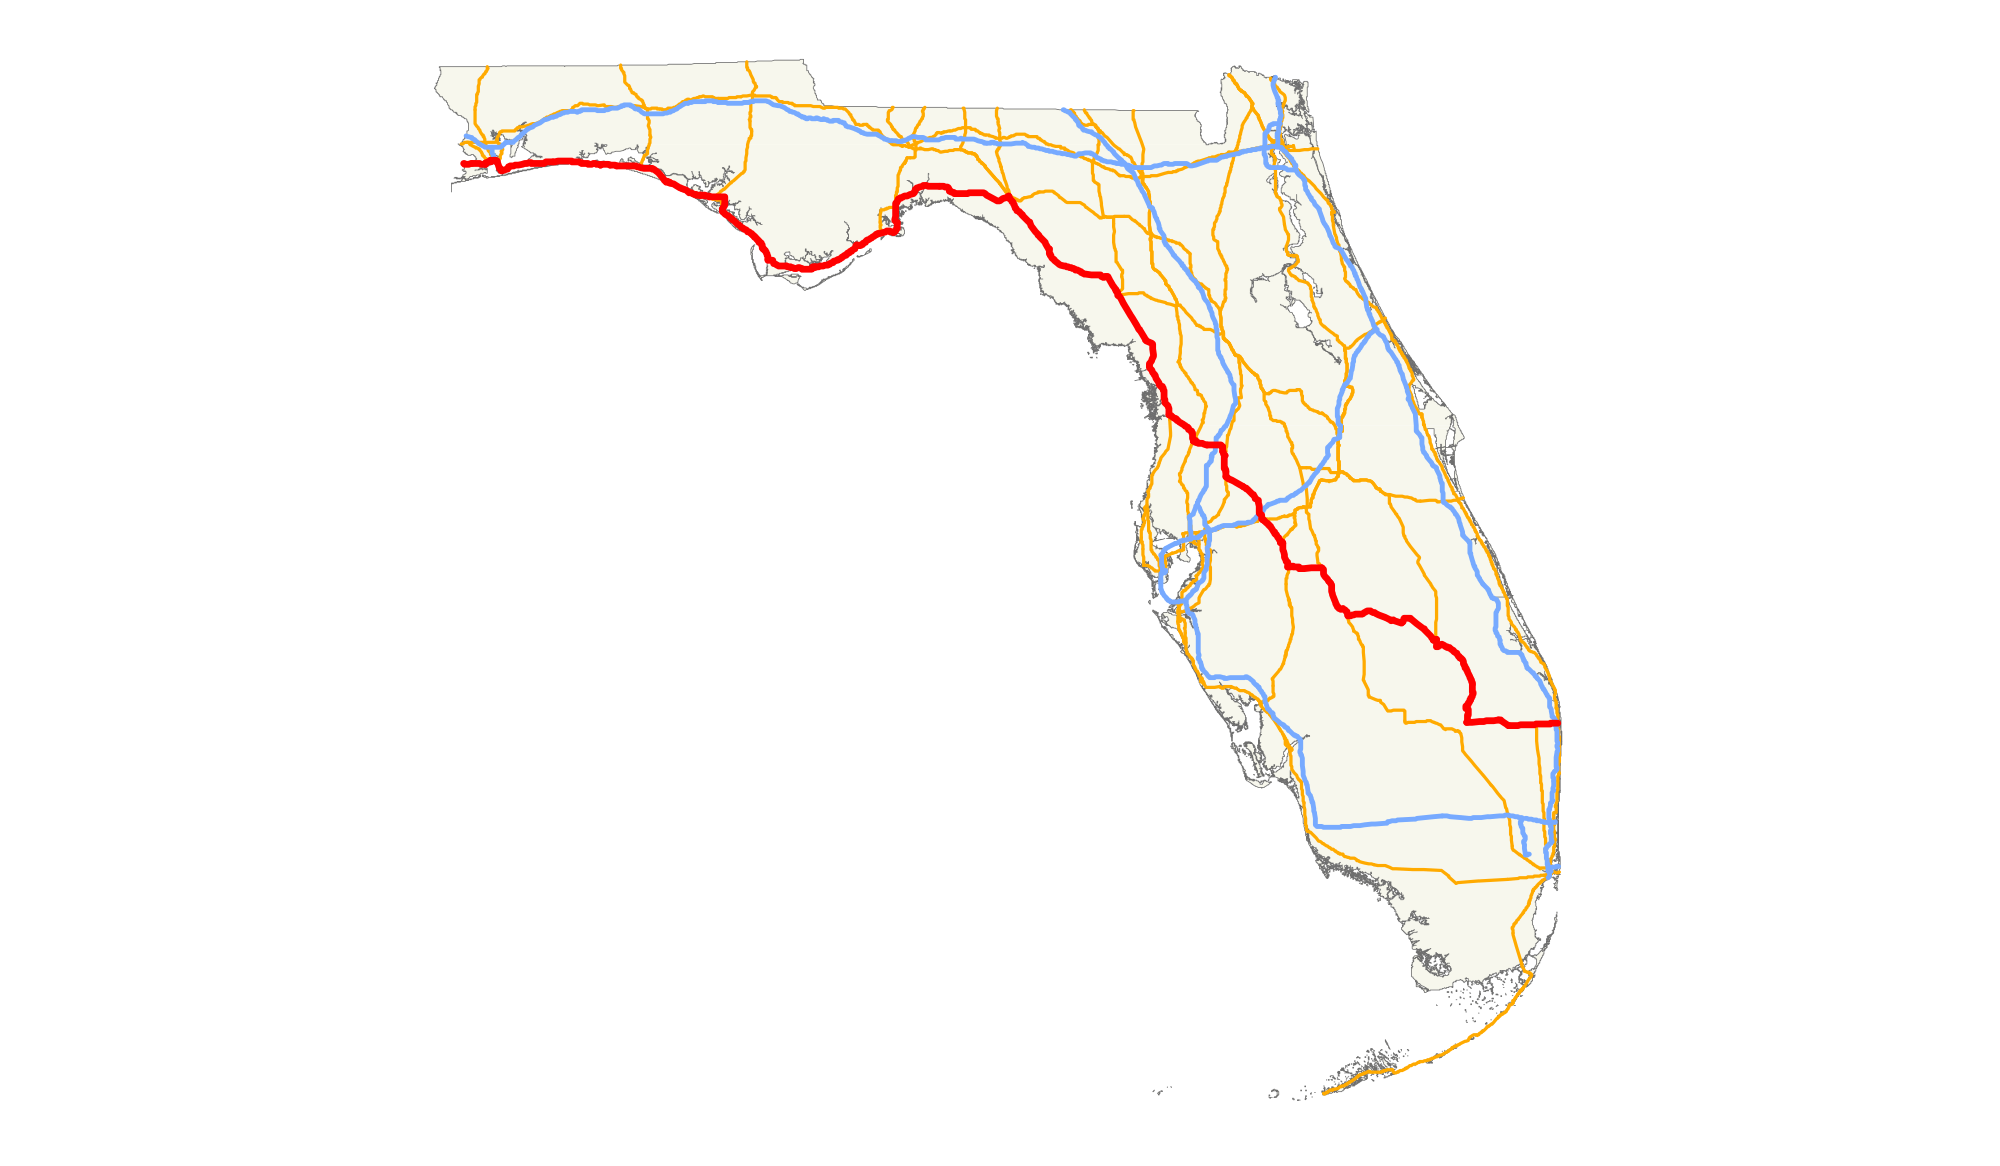 2000x1166 Fileus 98 (Fl) Map.svg